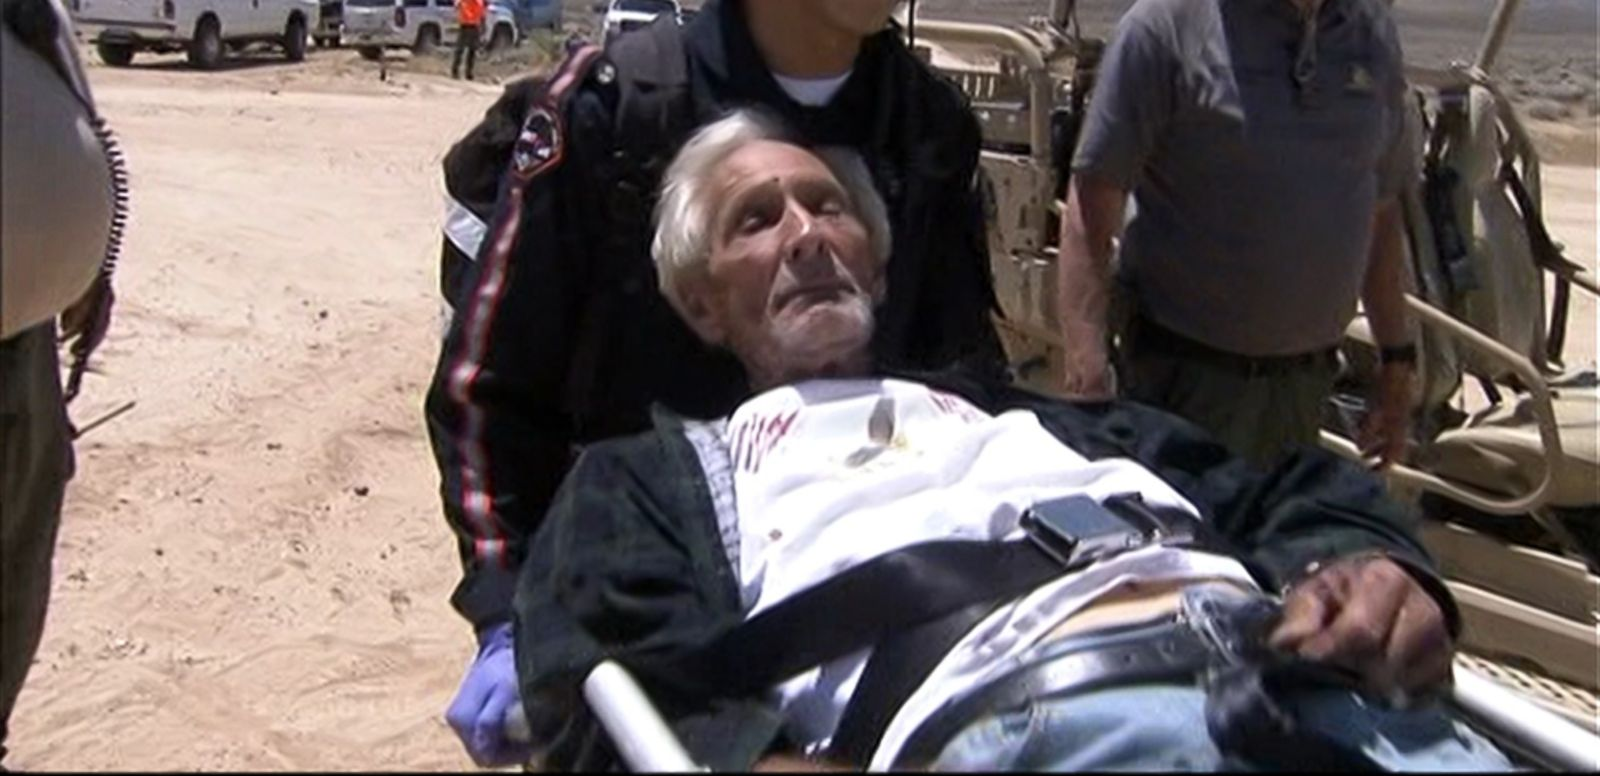 VIDEO: Rolland Towne, 86, was found bruised and bloodied after days away from his family's Mojave Desert campsite.